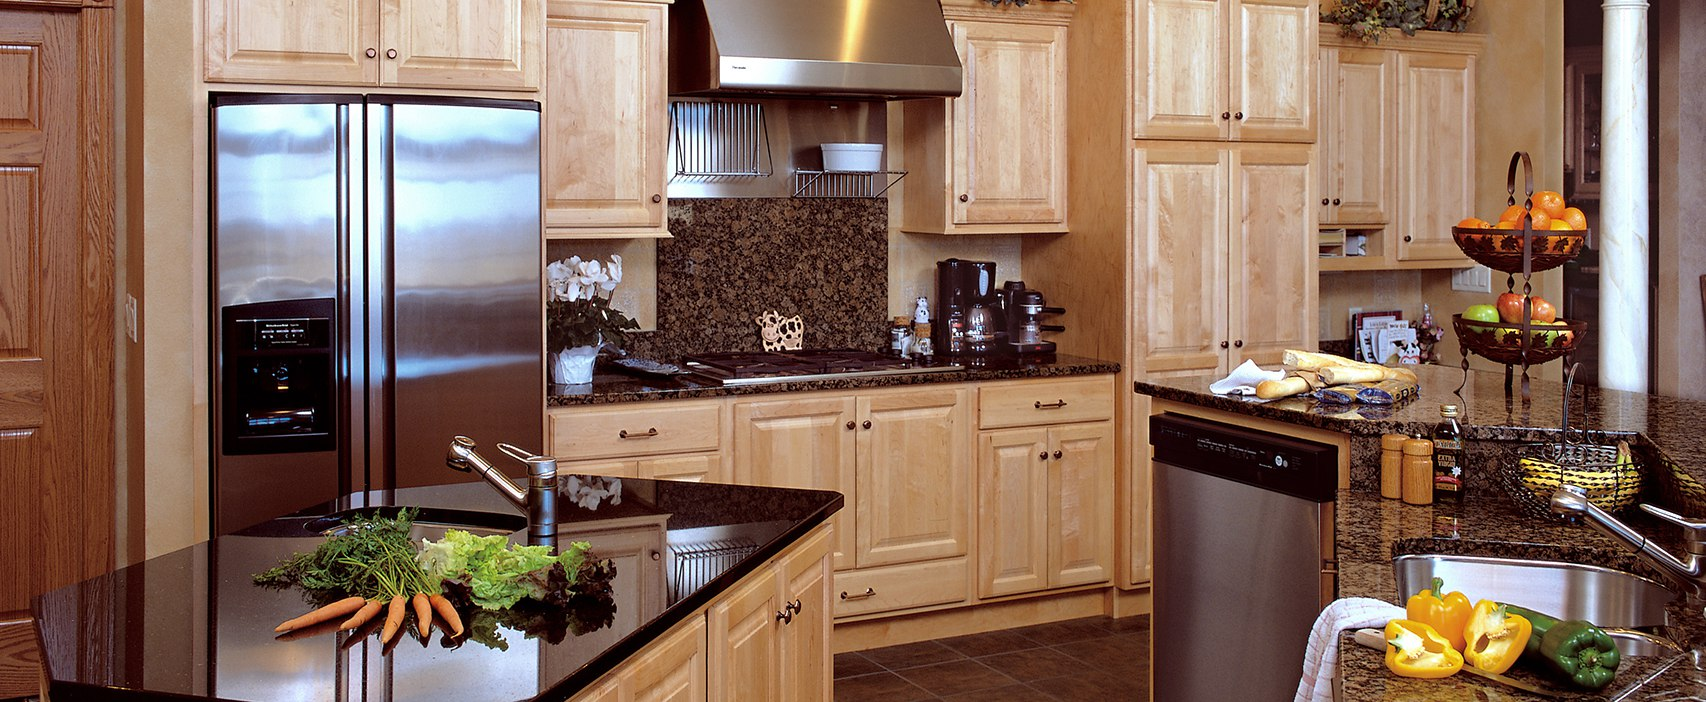 Superior Showplace Slider Showplace Kitchen Showplace Light Kitchen ... Design Inspirations